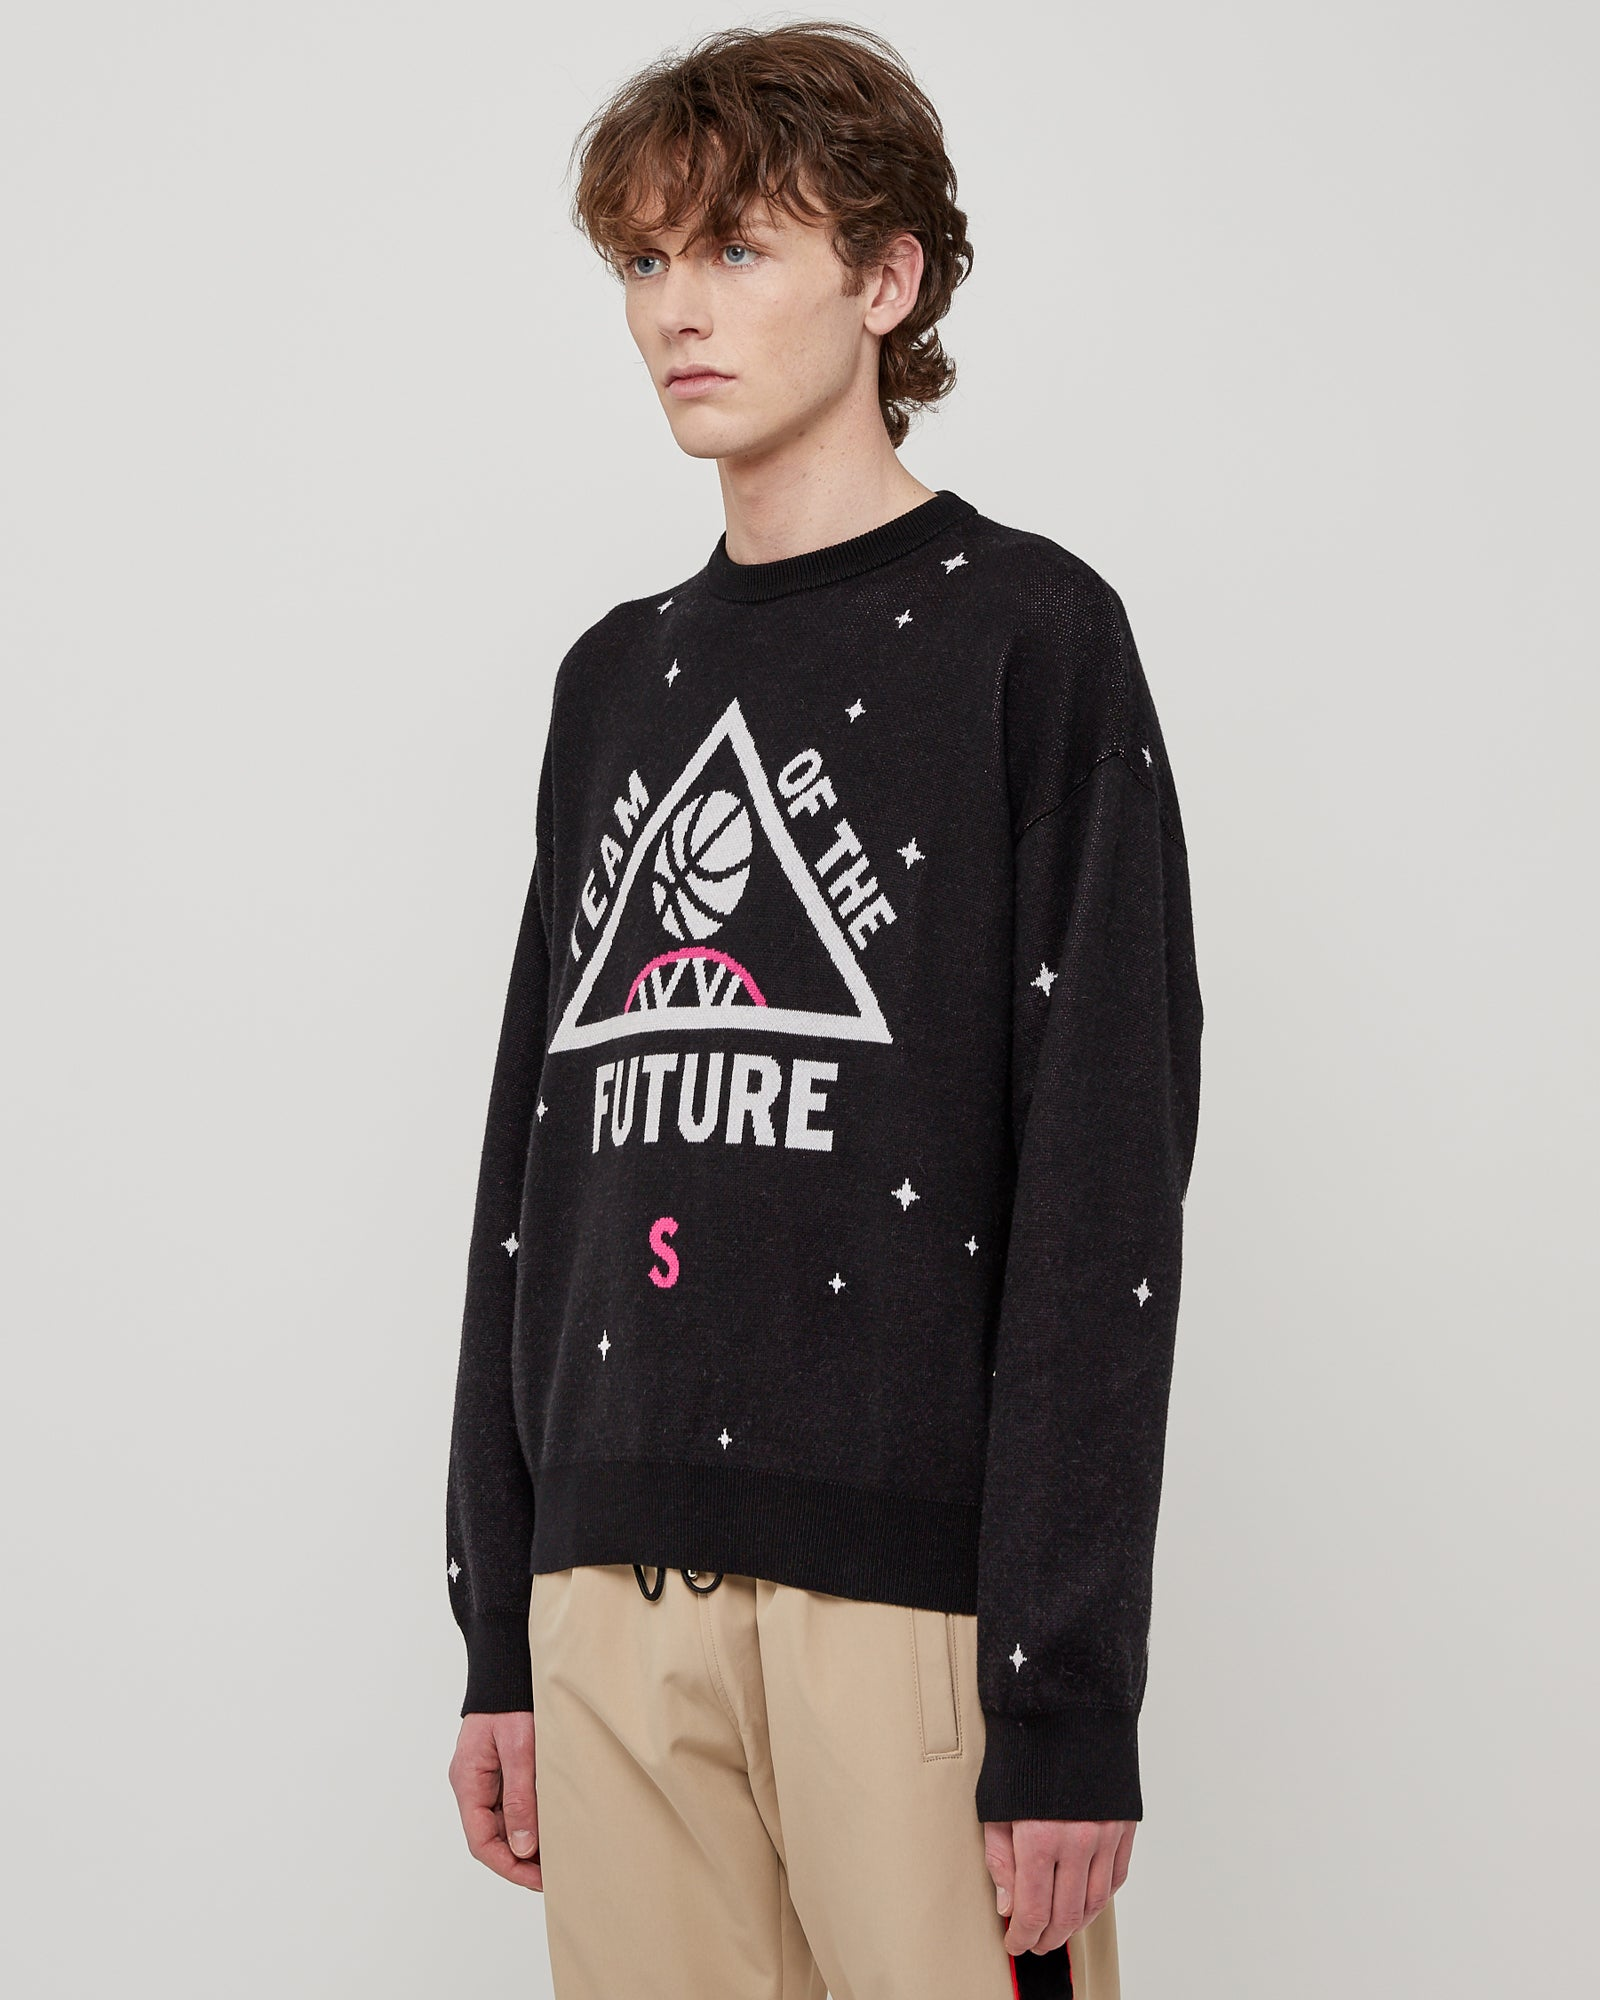 Team Of The Future Sweater in Black